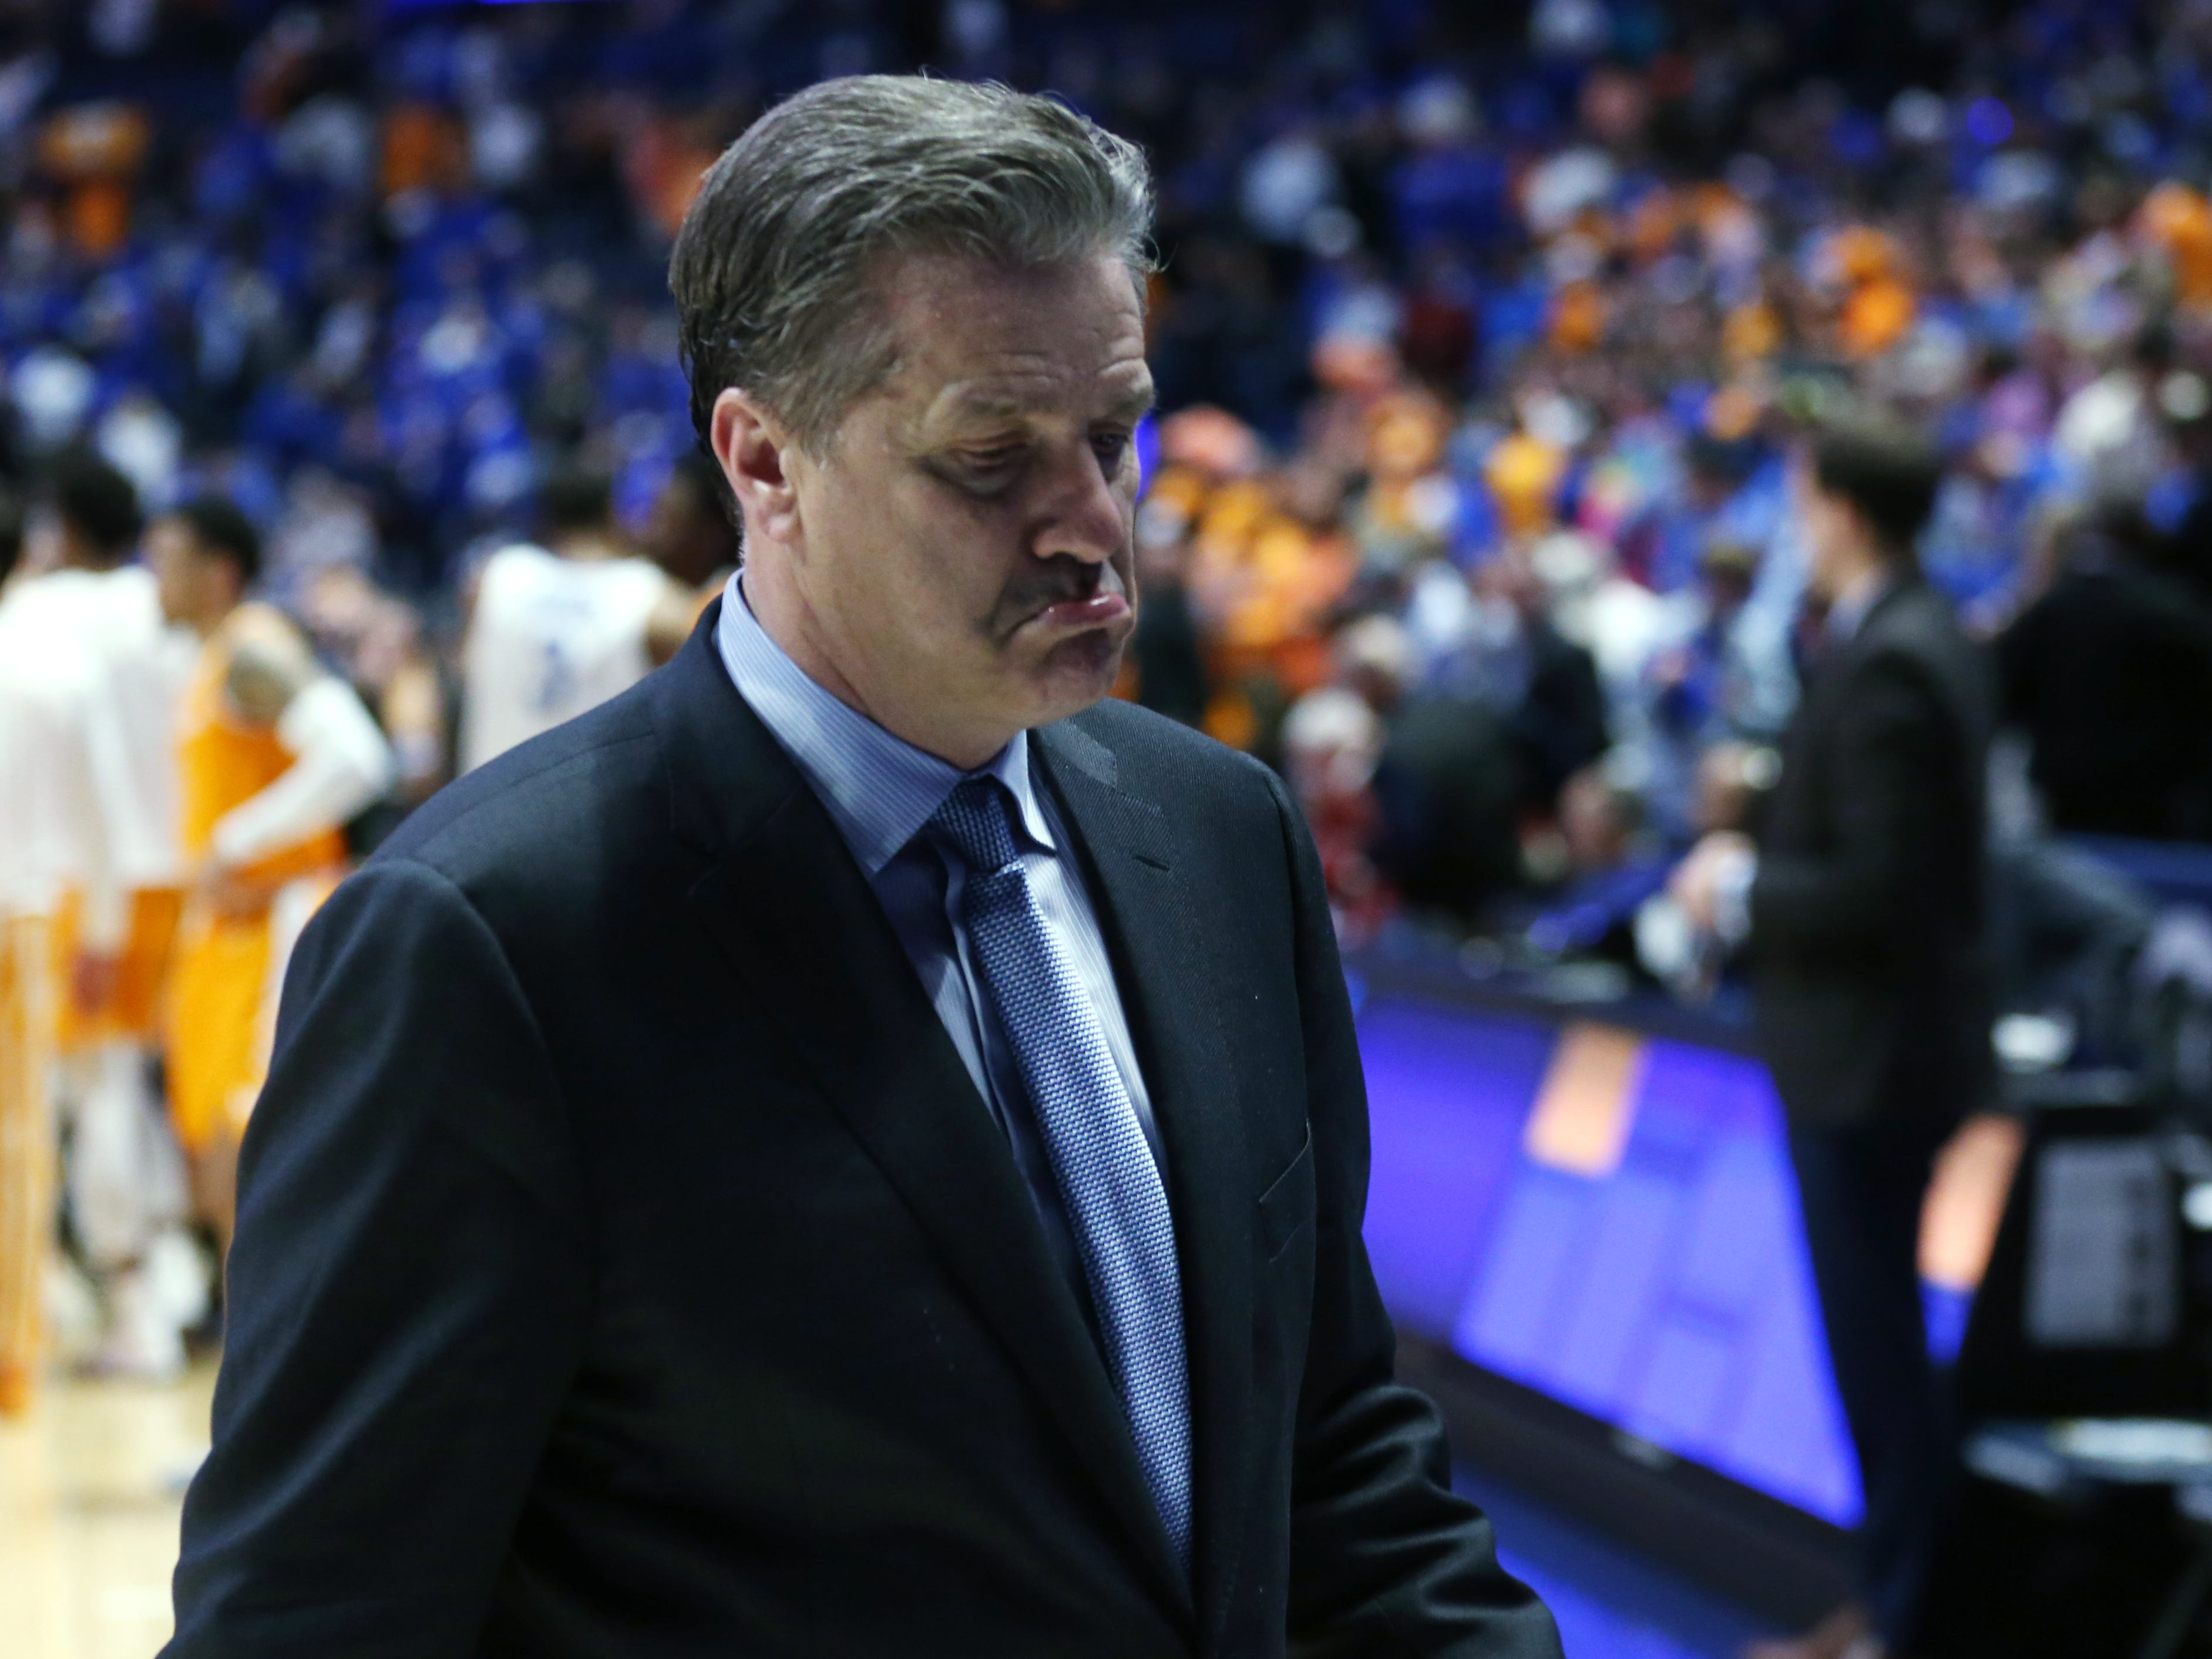 Kentucky head coach John Calipari walks off the court after his team's loss to Tennessee in the SEC Men's Basketball Tournament at Bridgestone Arena in Nashville, Tenn., Saturday, March 16, 2019.